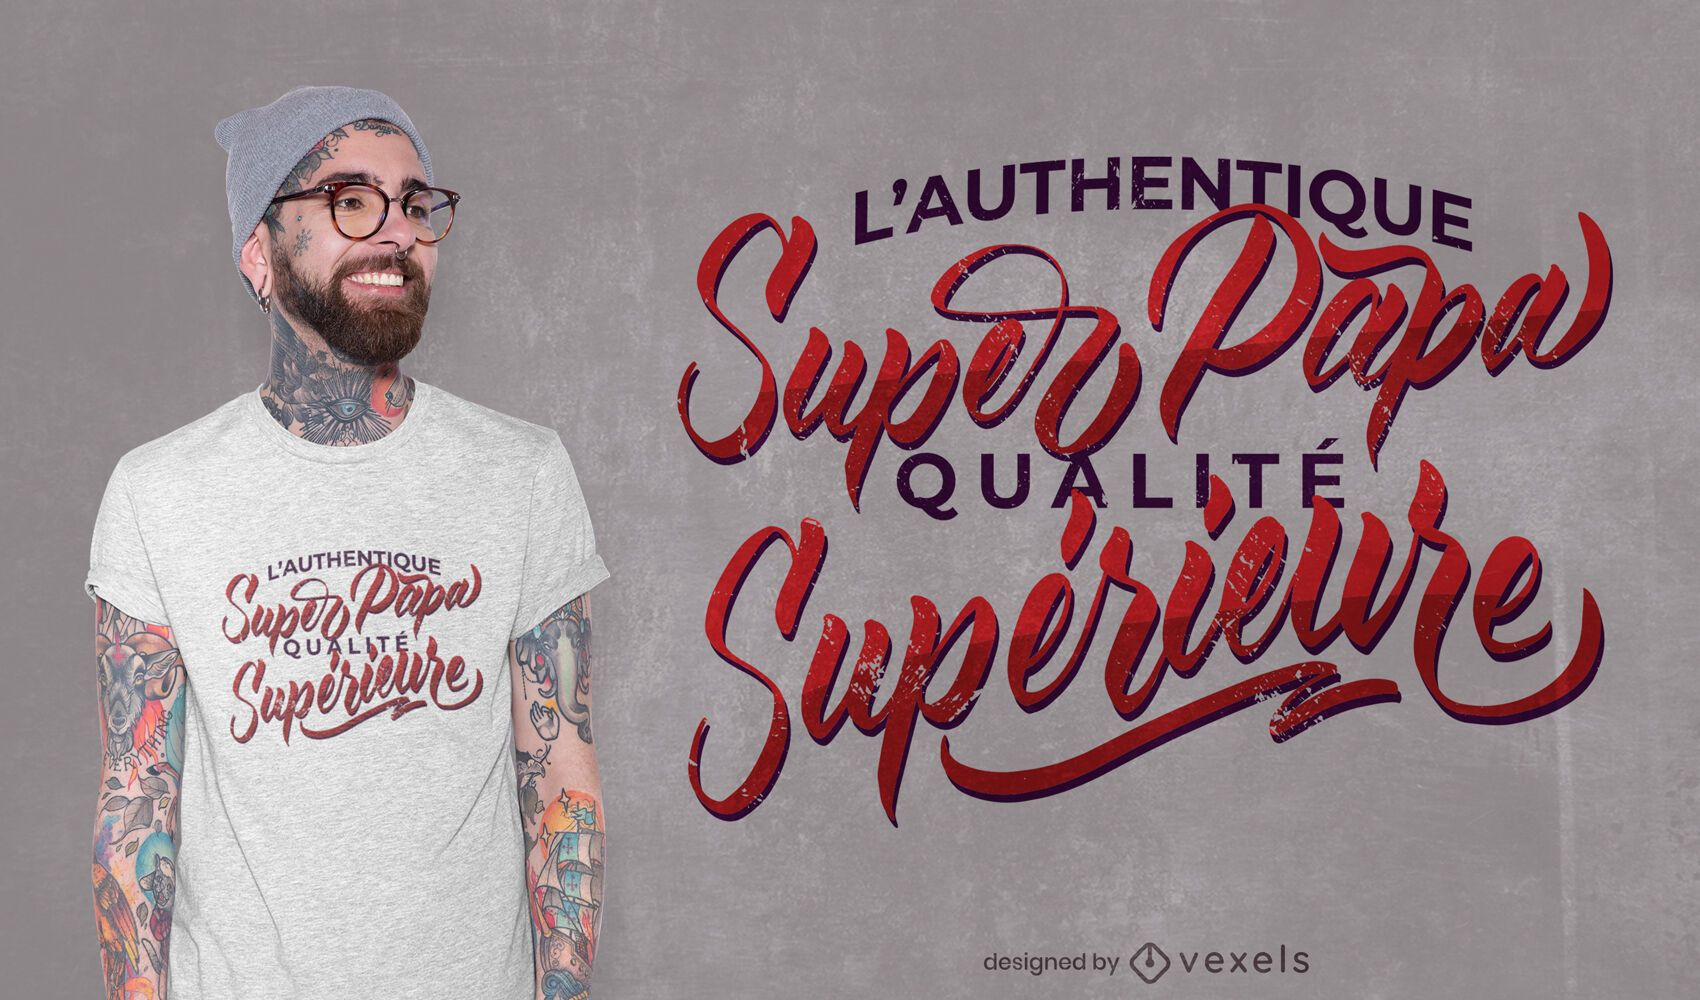 Super dad french quote t-shirt design